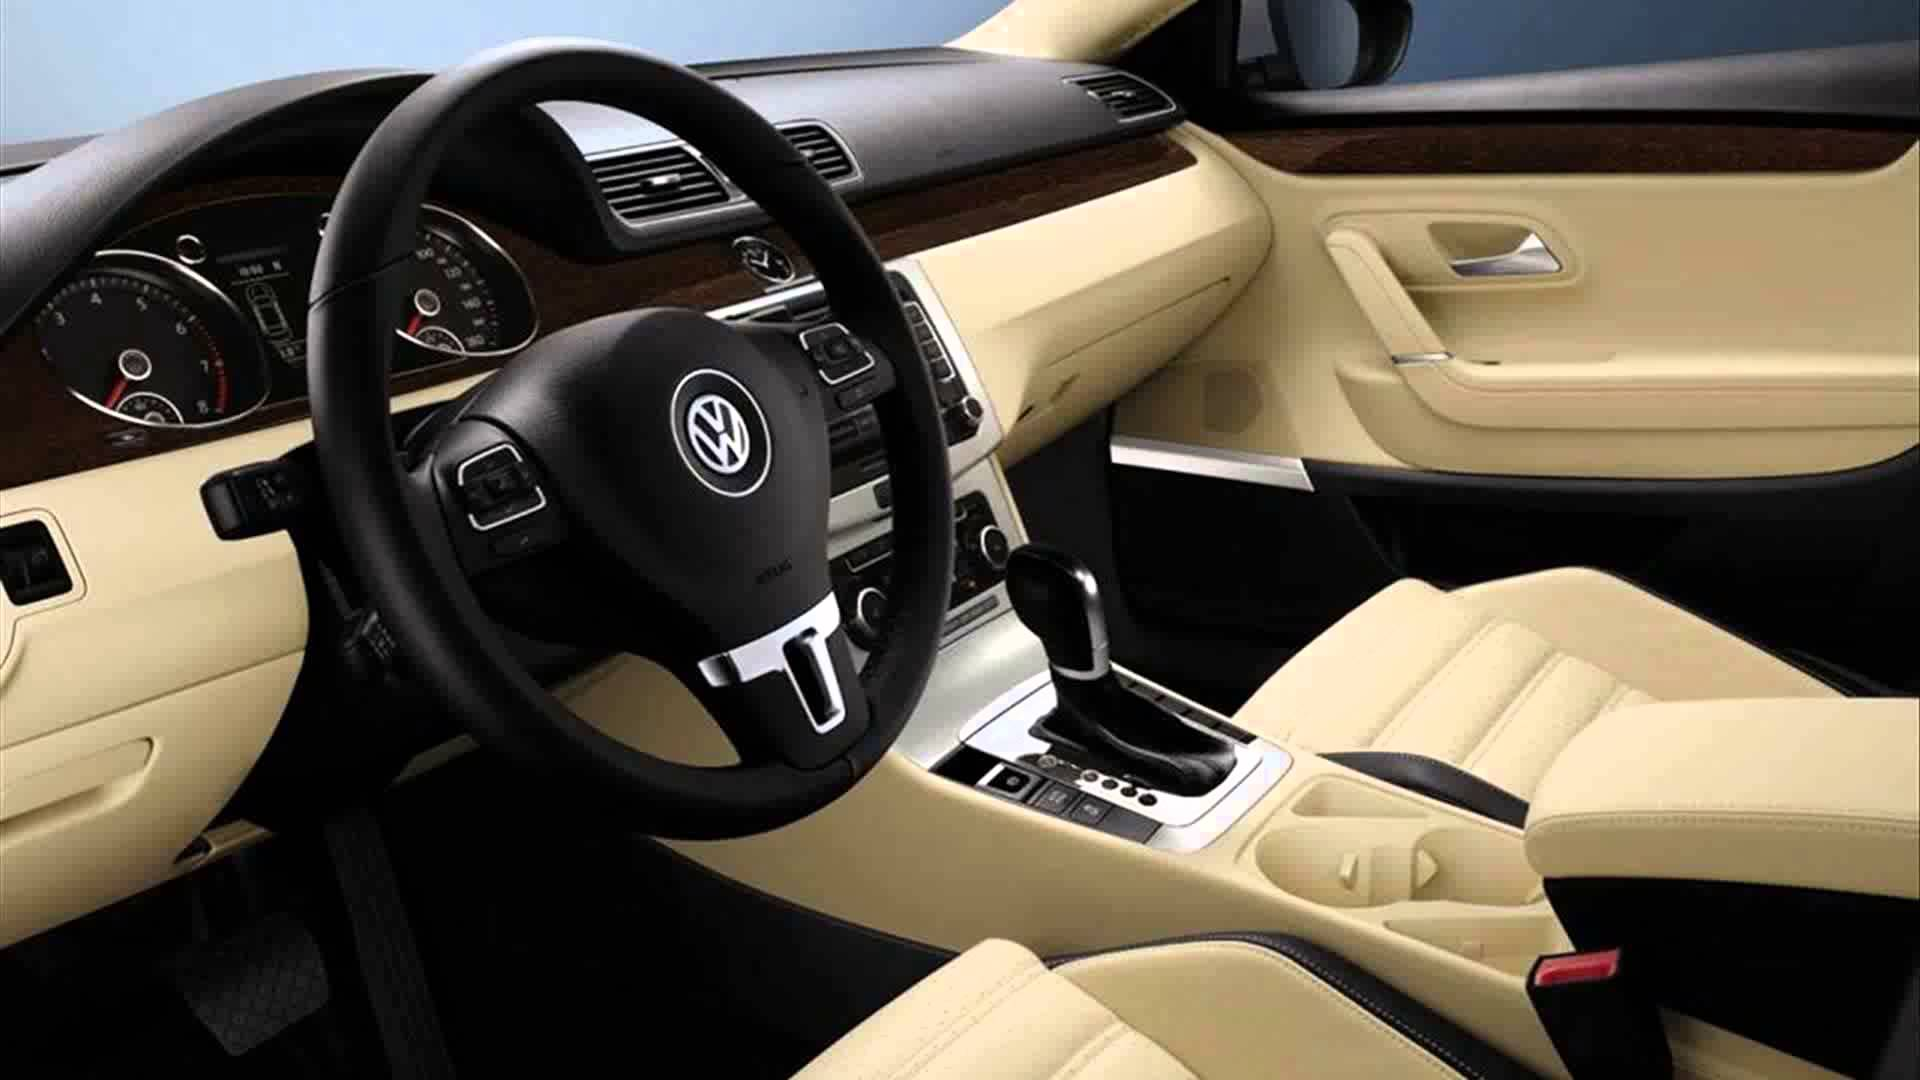 2015 Volkswagen Cc v6 4Motion Executive